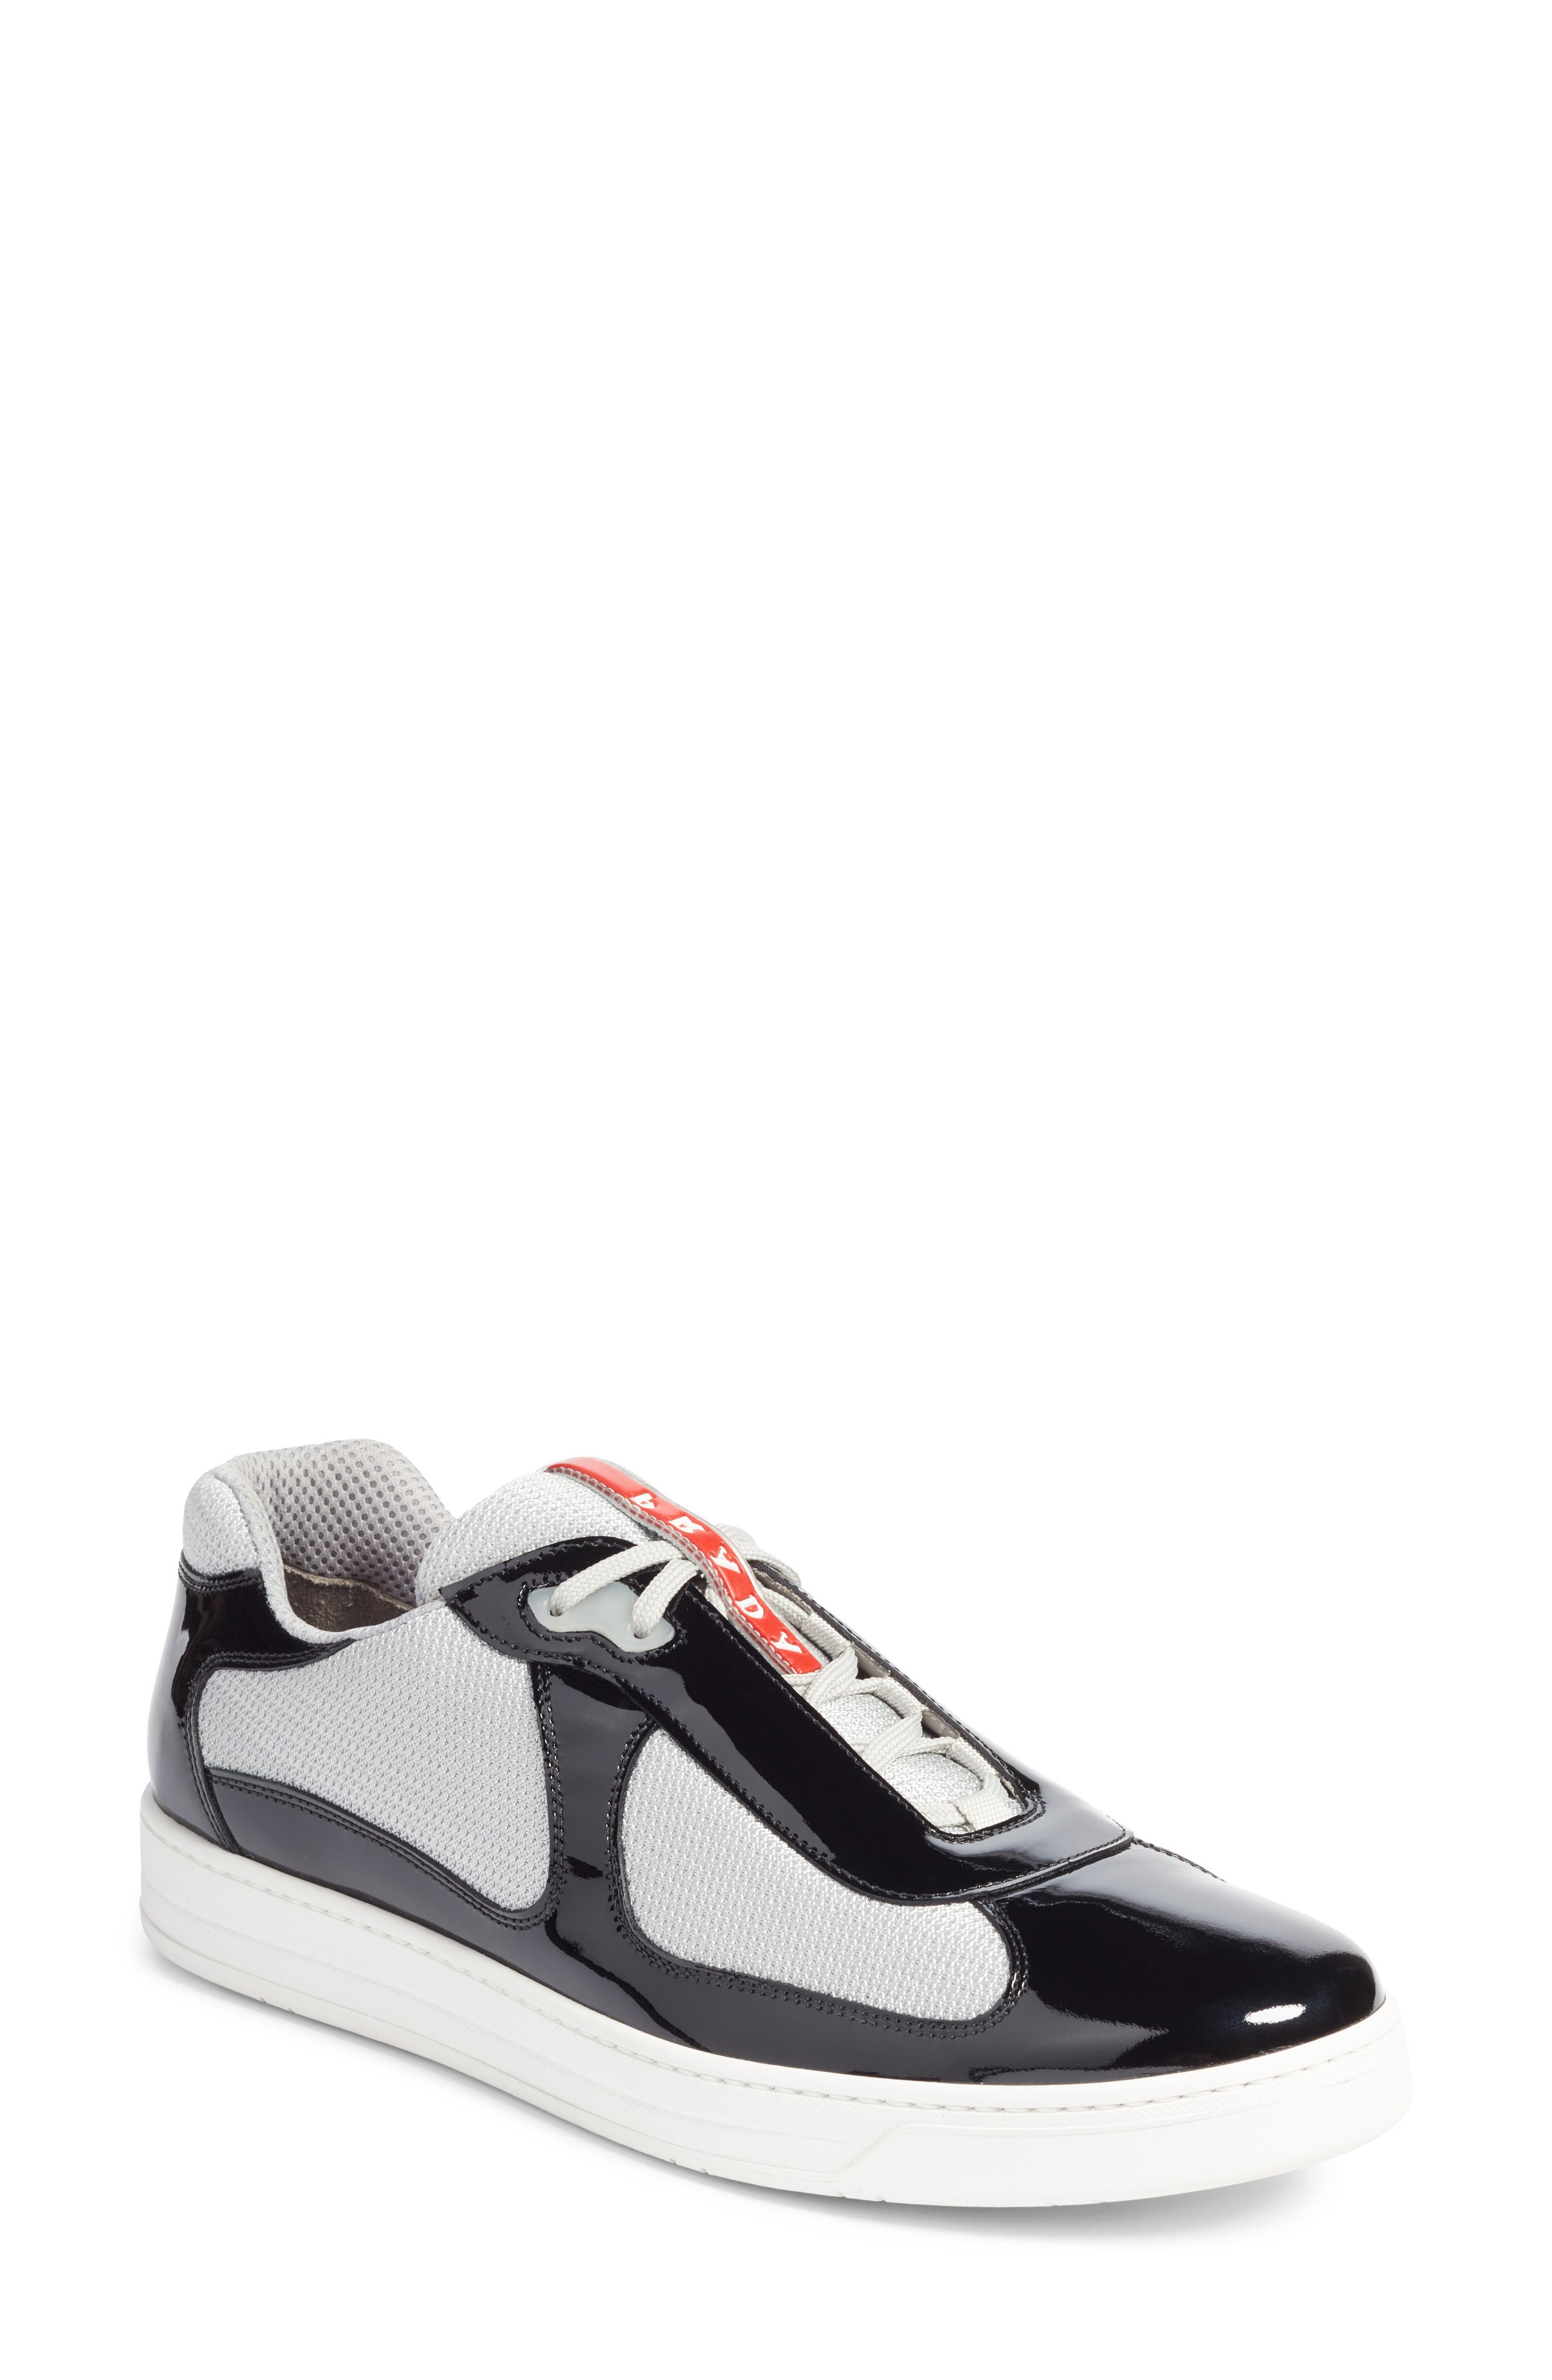 Linea Rossa New America's Cup Sneaker,                             Main thumbnail 1, color,                             009